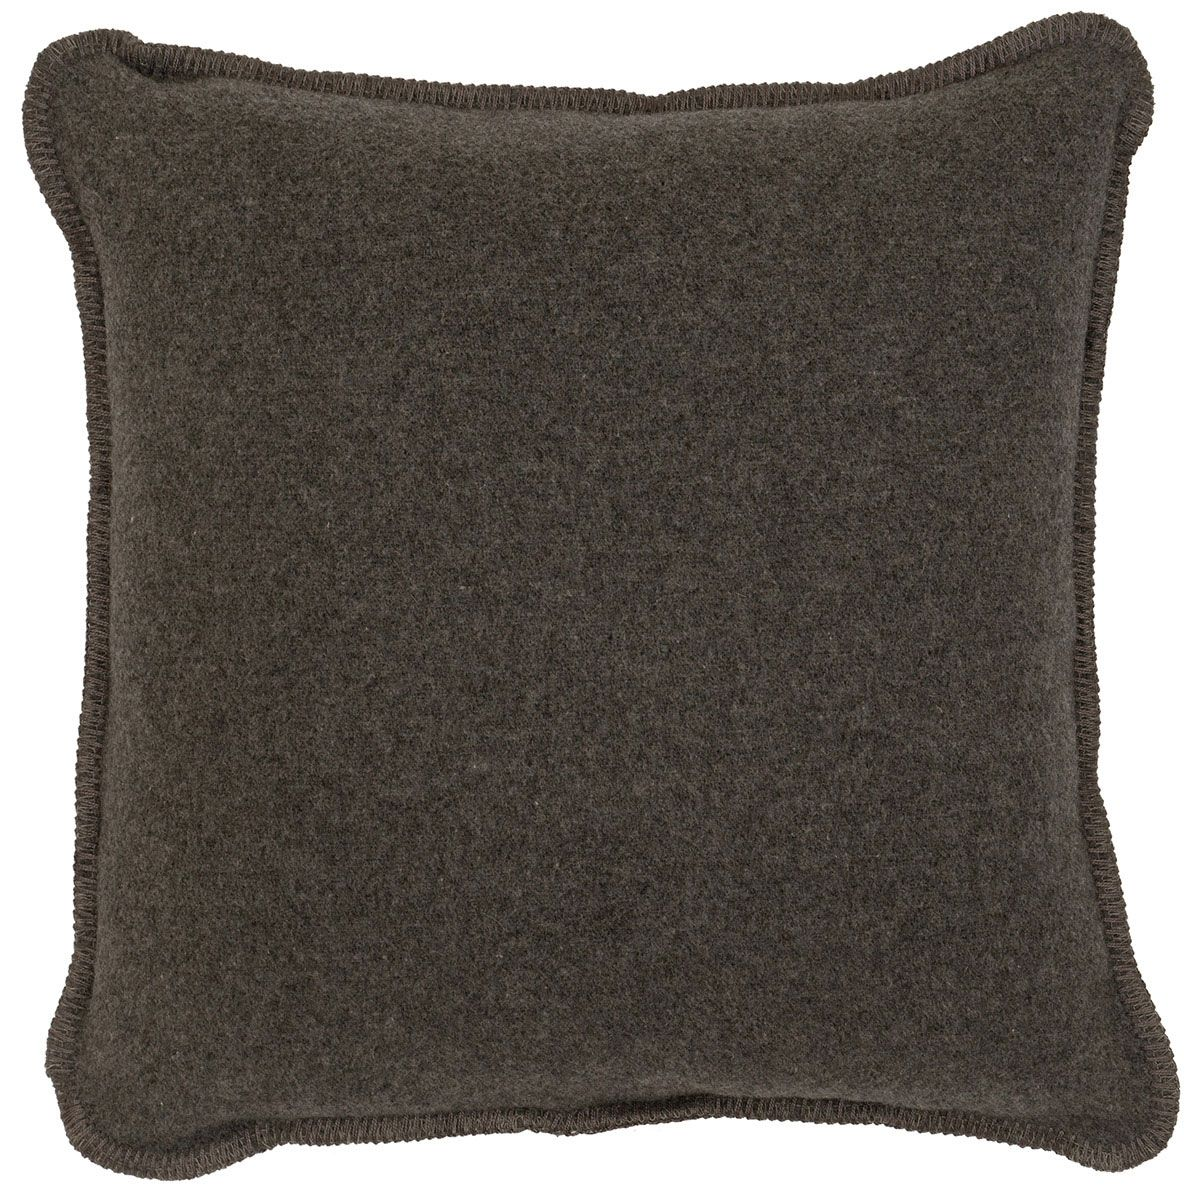 Graystone Pillow